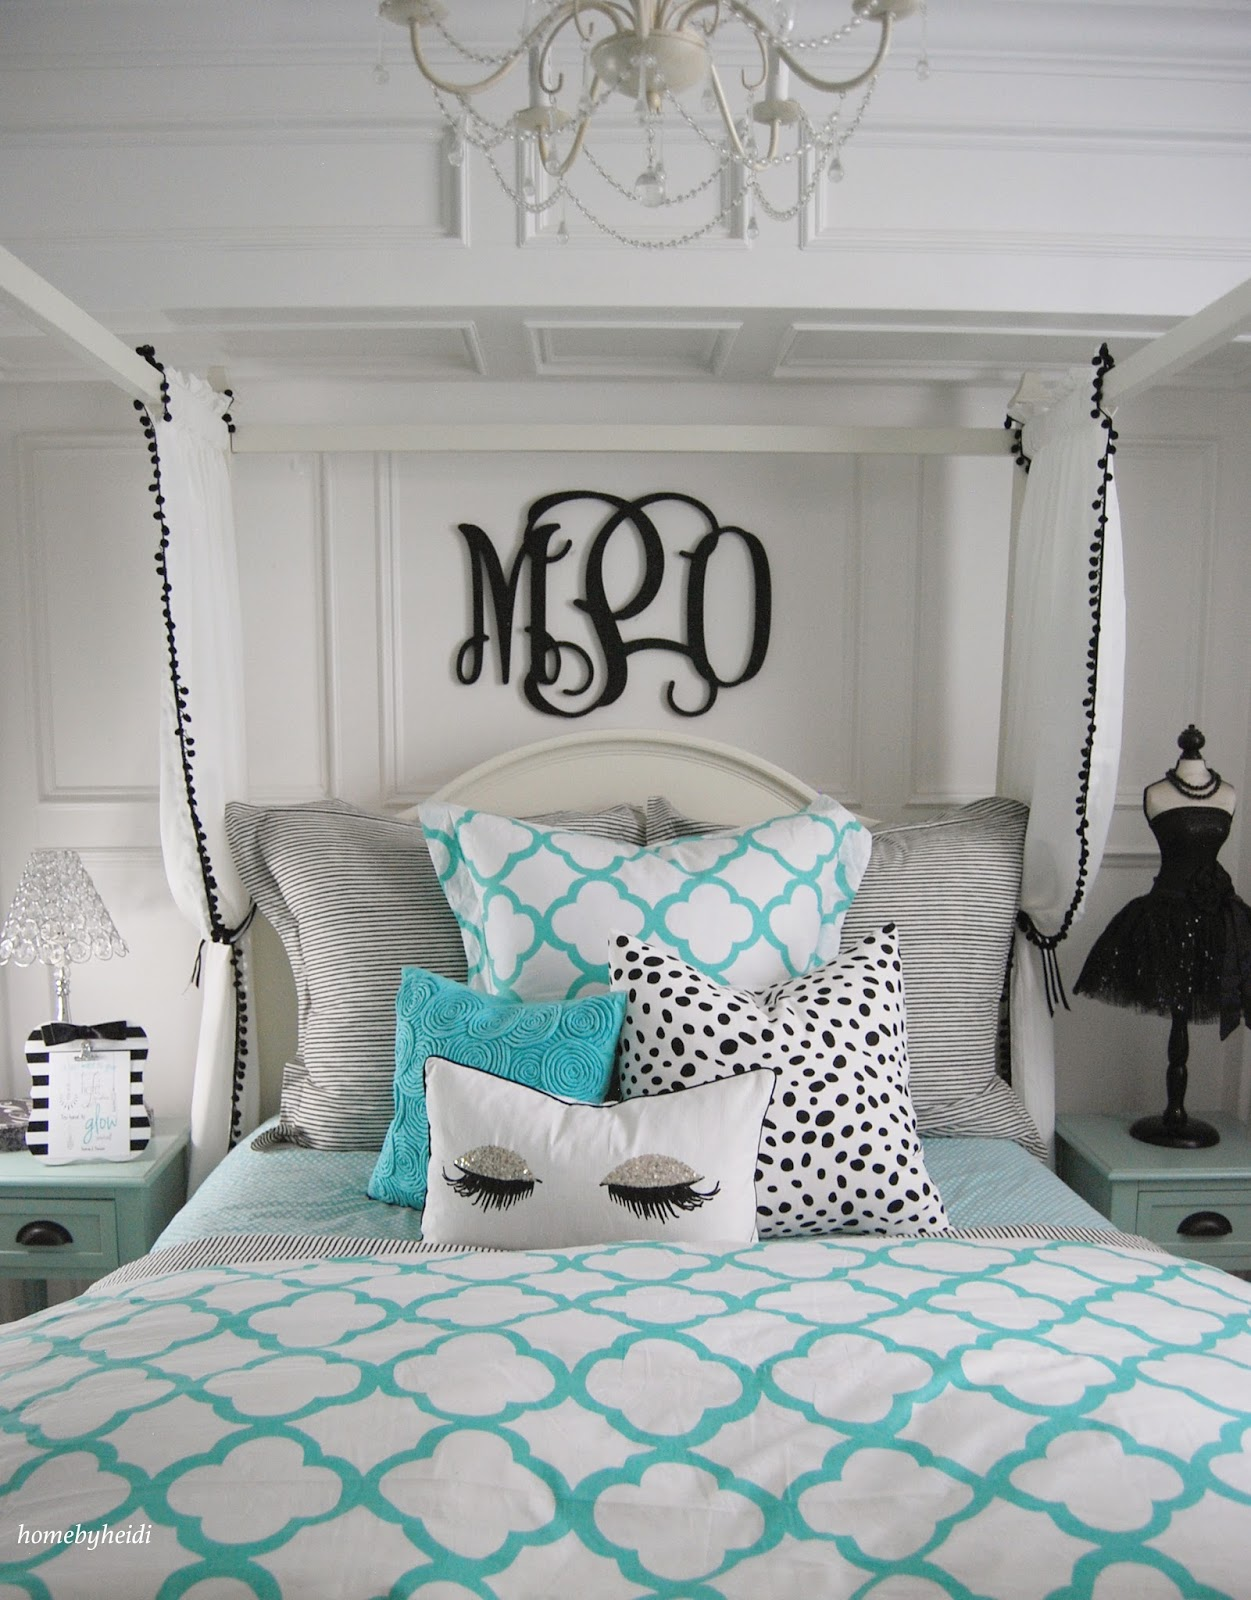 Home by heidi tiffany inspired bedroom for Teen bedroom decor